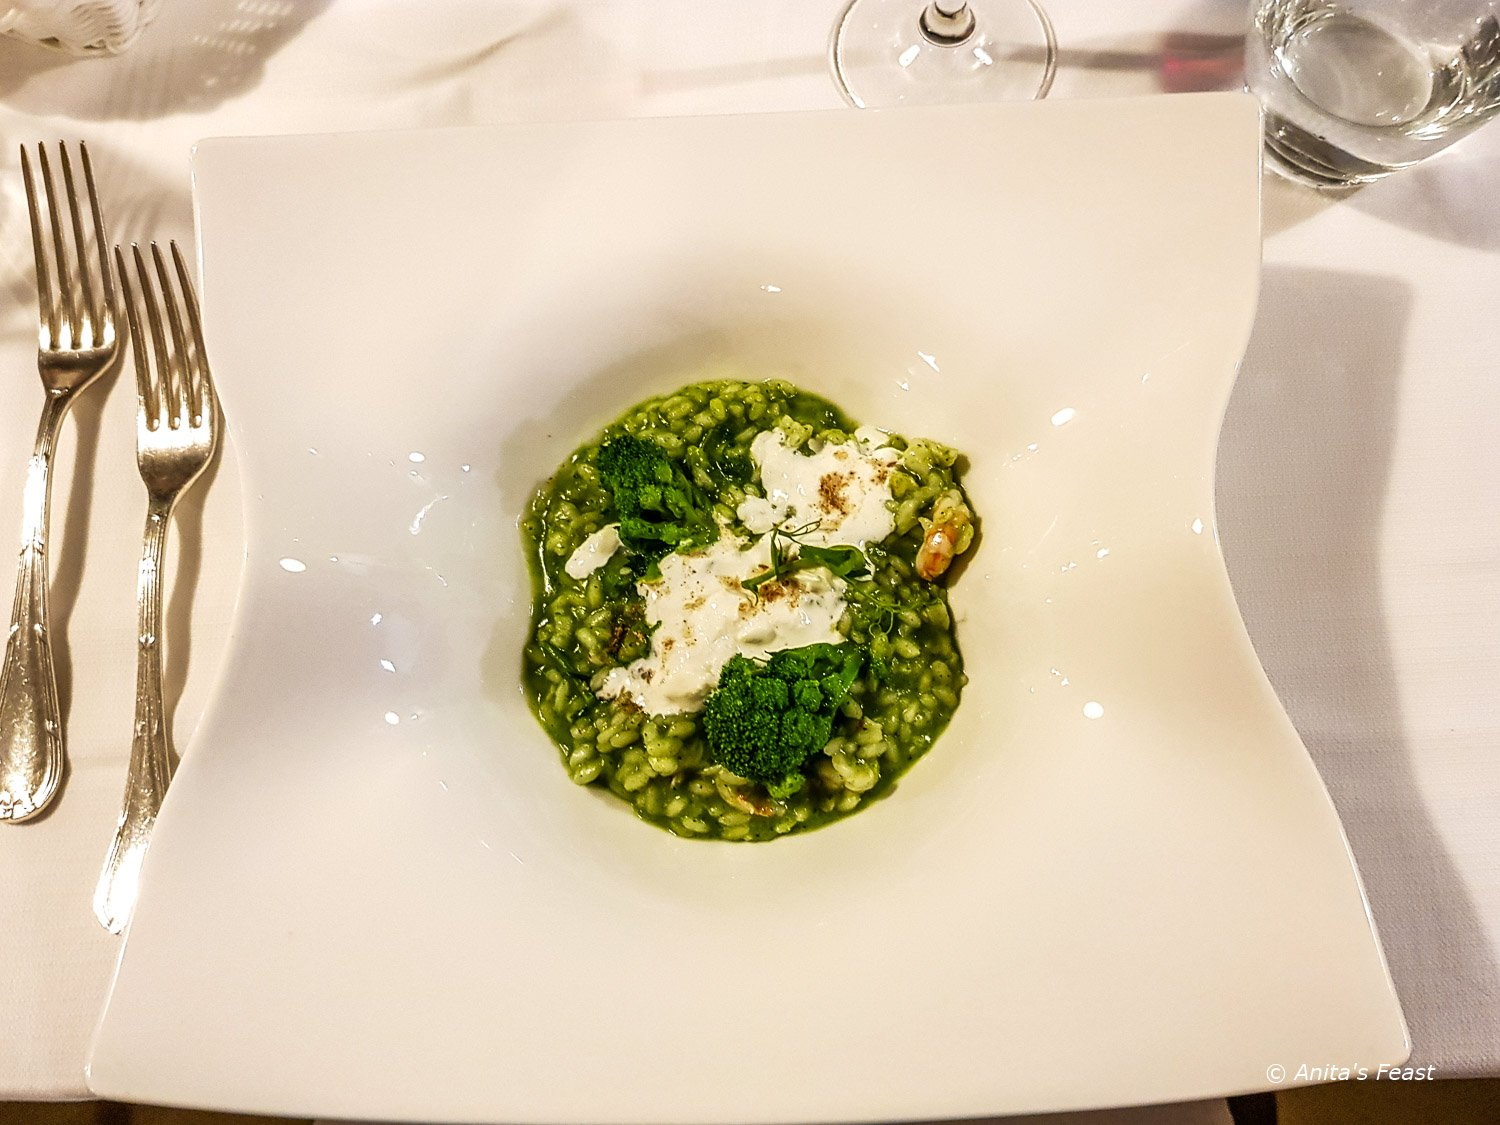 Risotto with broccoli rabe from the Nobis kitchen, Grand Hotel la Chiusa di Chietri